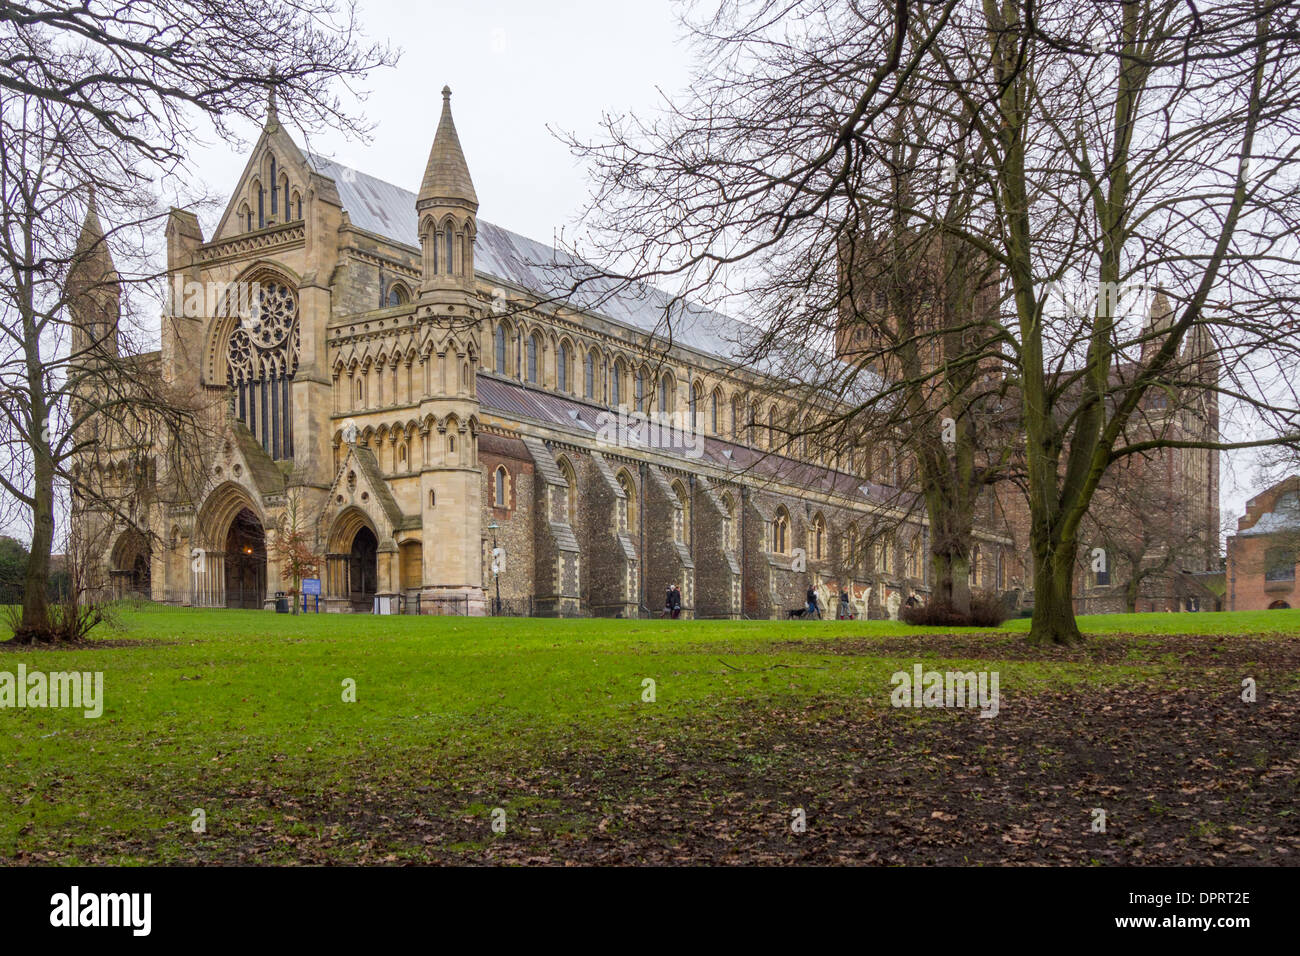 Cathedral of St Albans, Hertfordshire, England, UK, seen from Abbey Mill Lane. - Stock Image